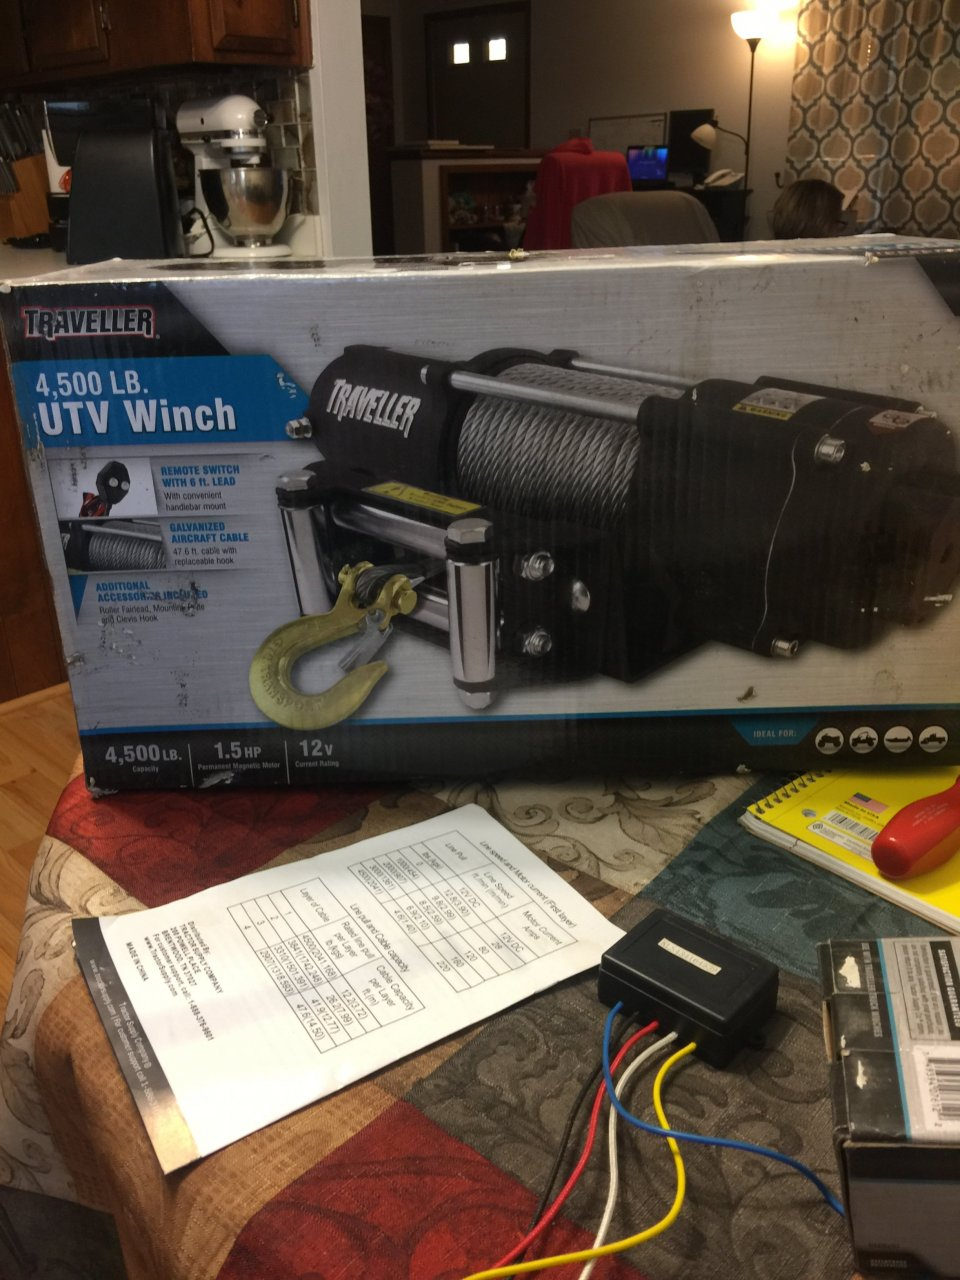 I Have A Traveller 4500 Lb Winch Model # 1078311 And Need To